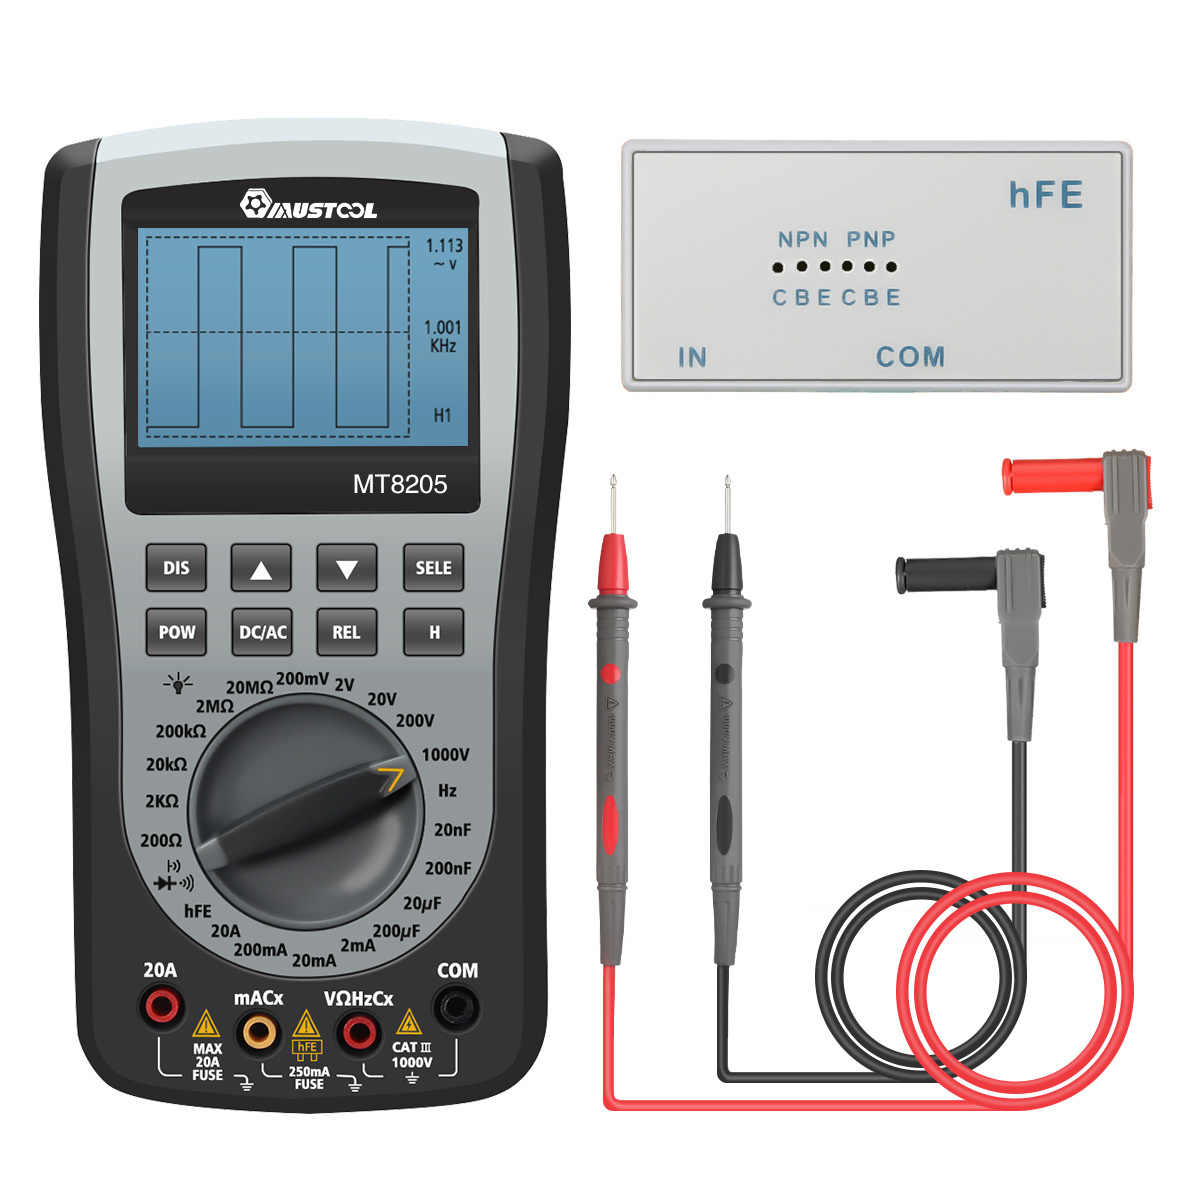 Mustool MT8205 2 in 1 Digitale Intelligente Palmare Oscilloscopio a Memoria Multimetro Frequenza di Resistenza Resistenza di Tensione di Corrente Tester